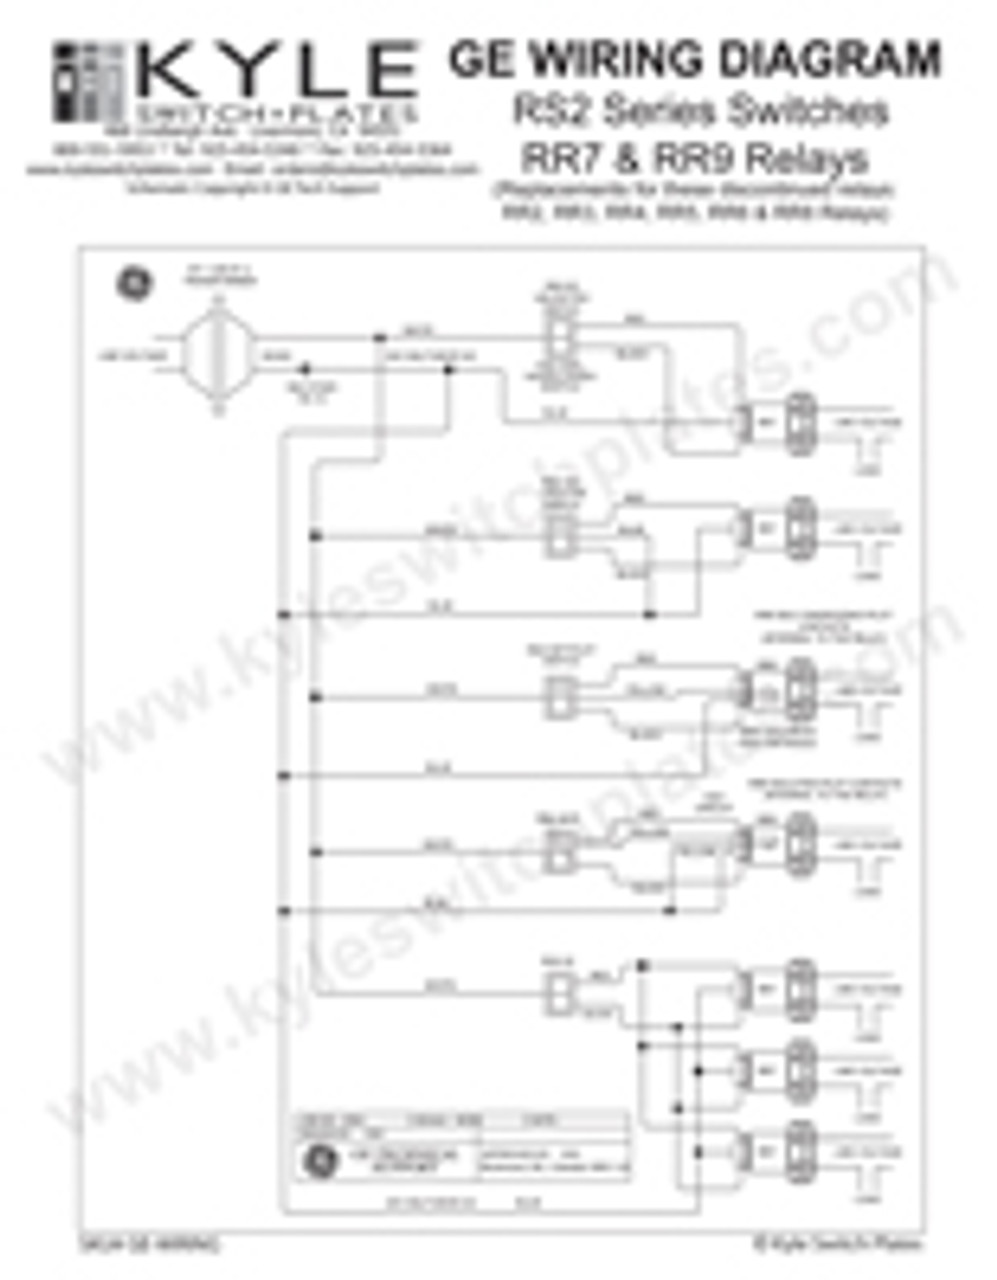 GE Low Voltage Light Switch & Relay Wiring Guide - DownloadKyle Switch Plates